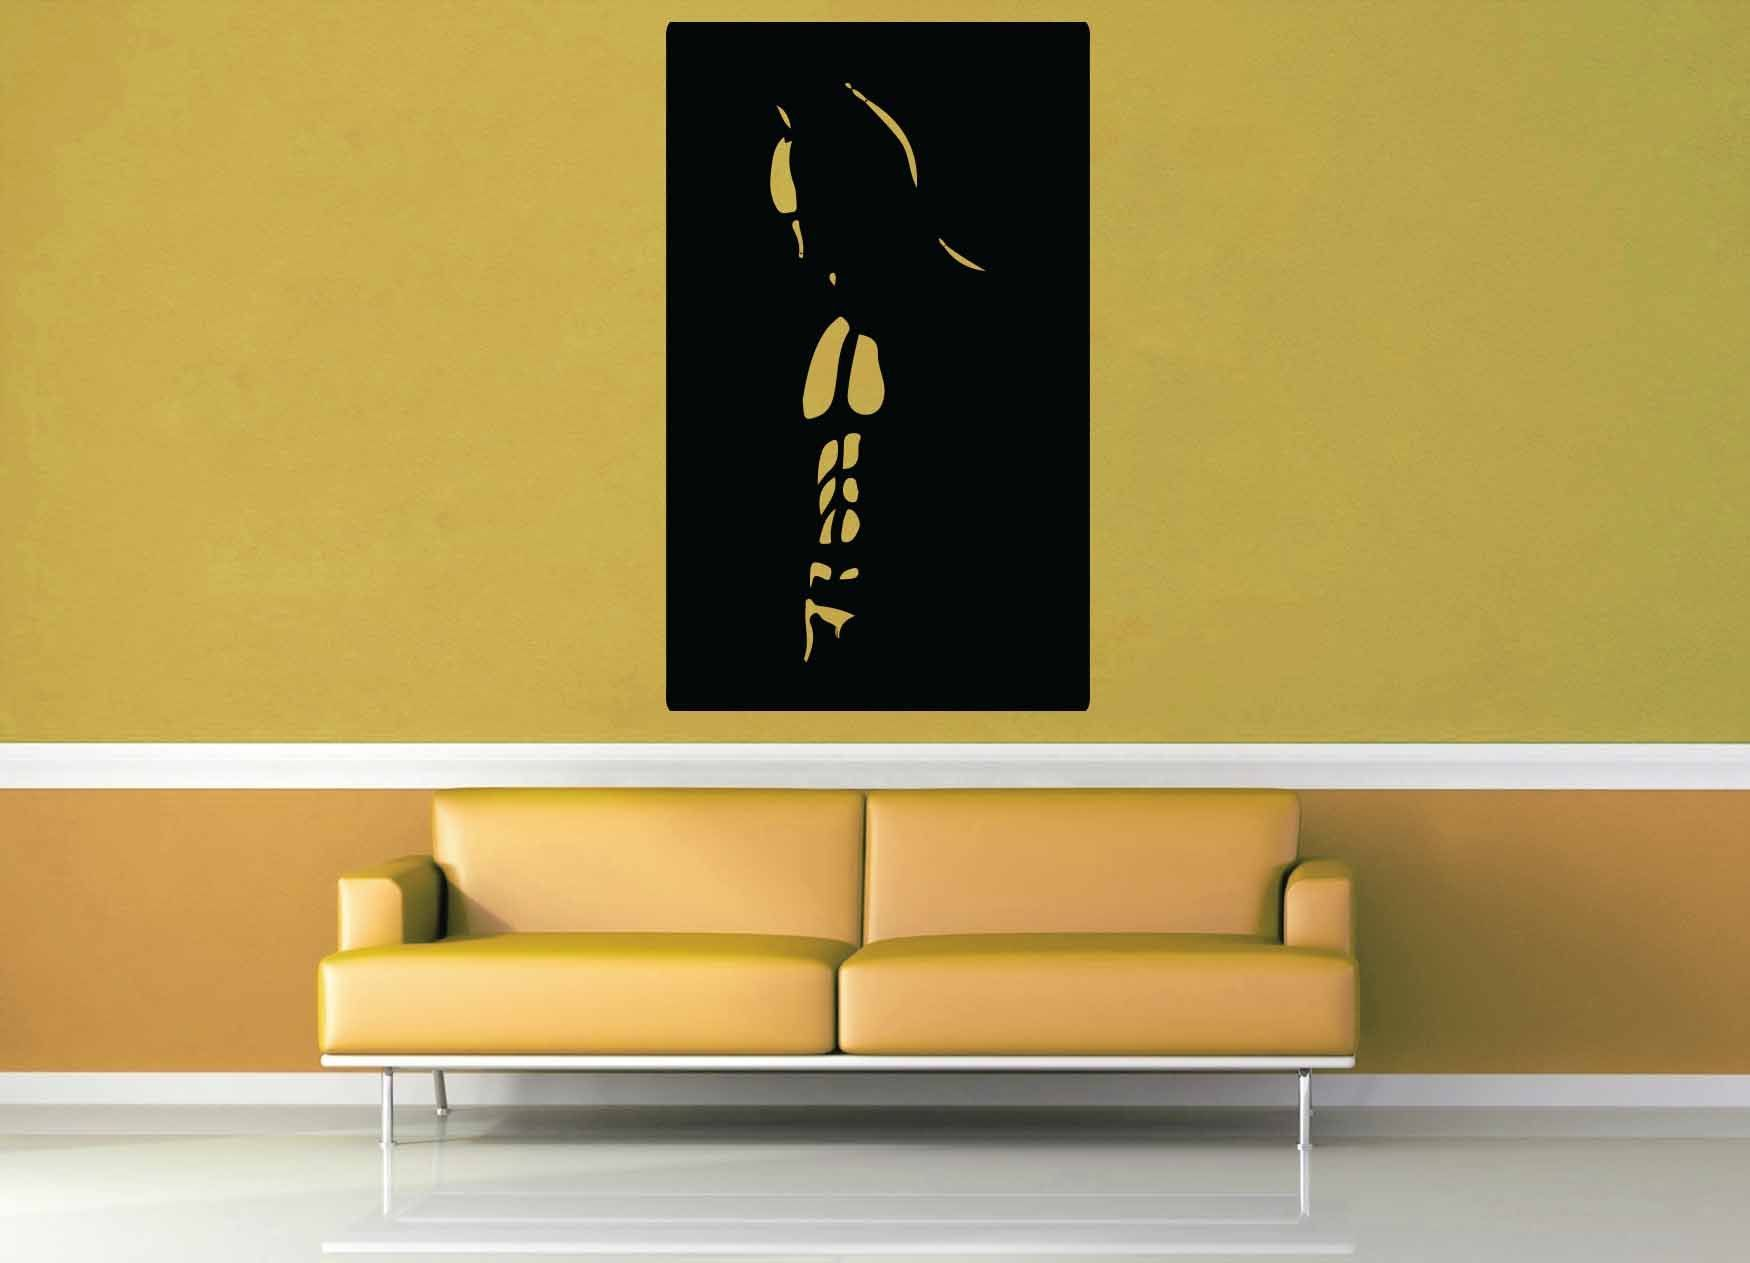 Batman Silhouette - Wall Decal - No 1 | Wall decals, Silhouettes and ...